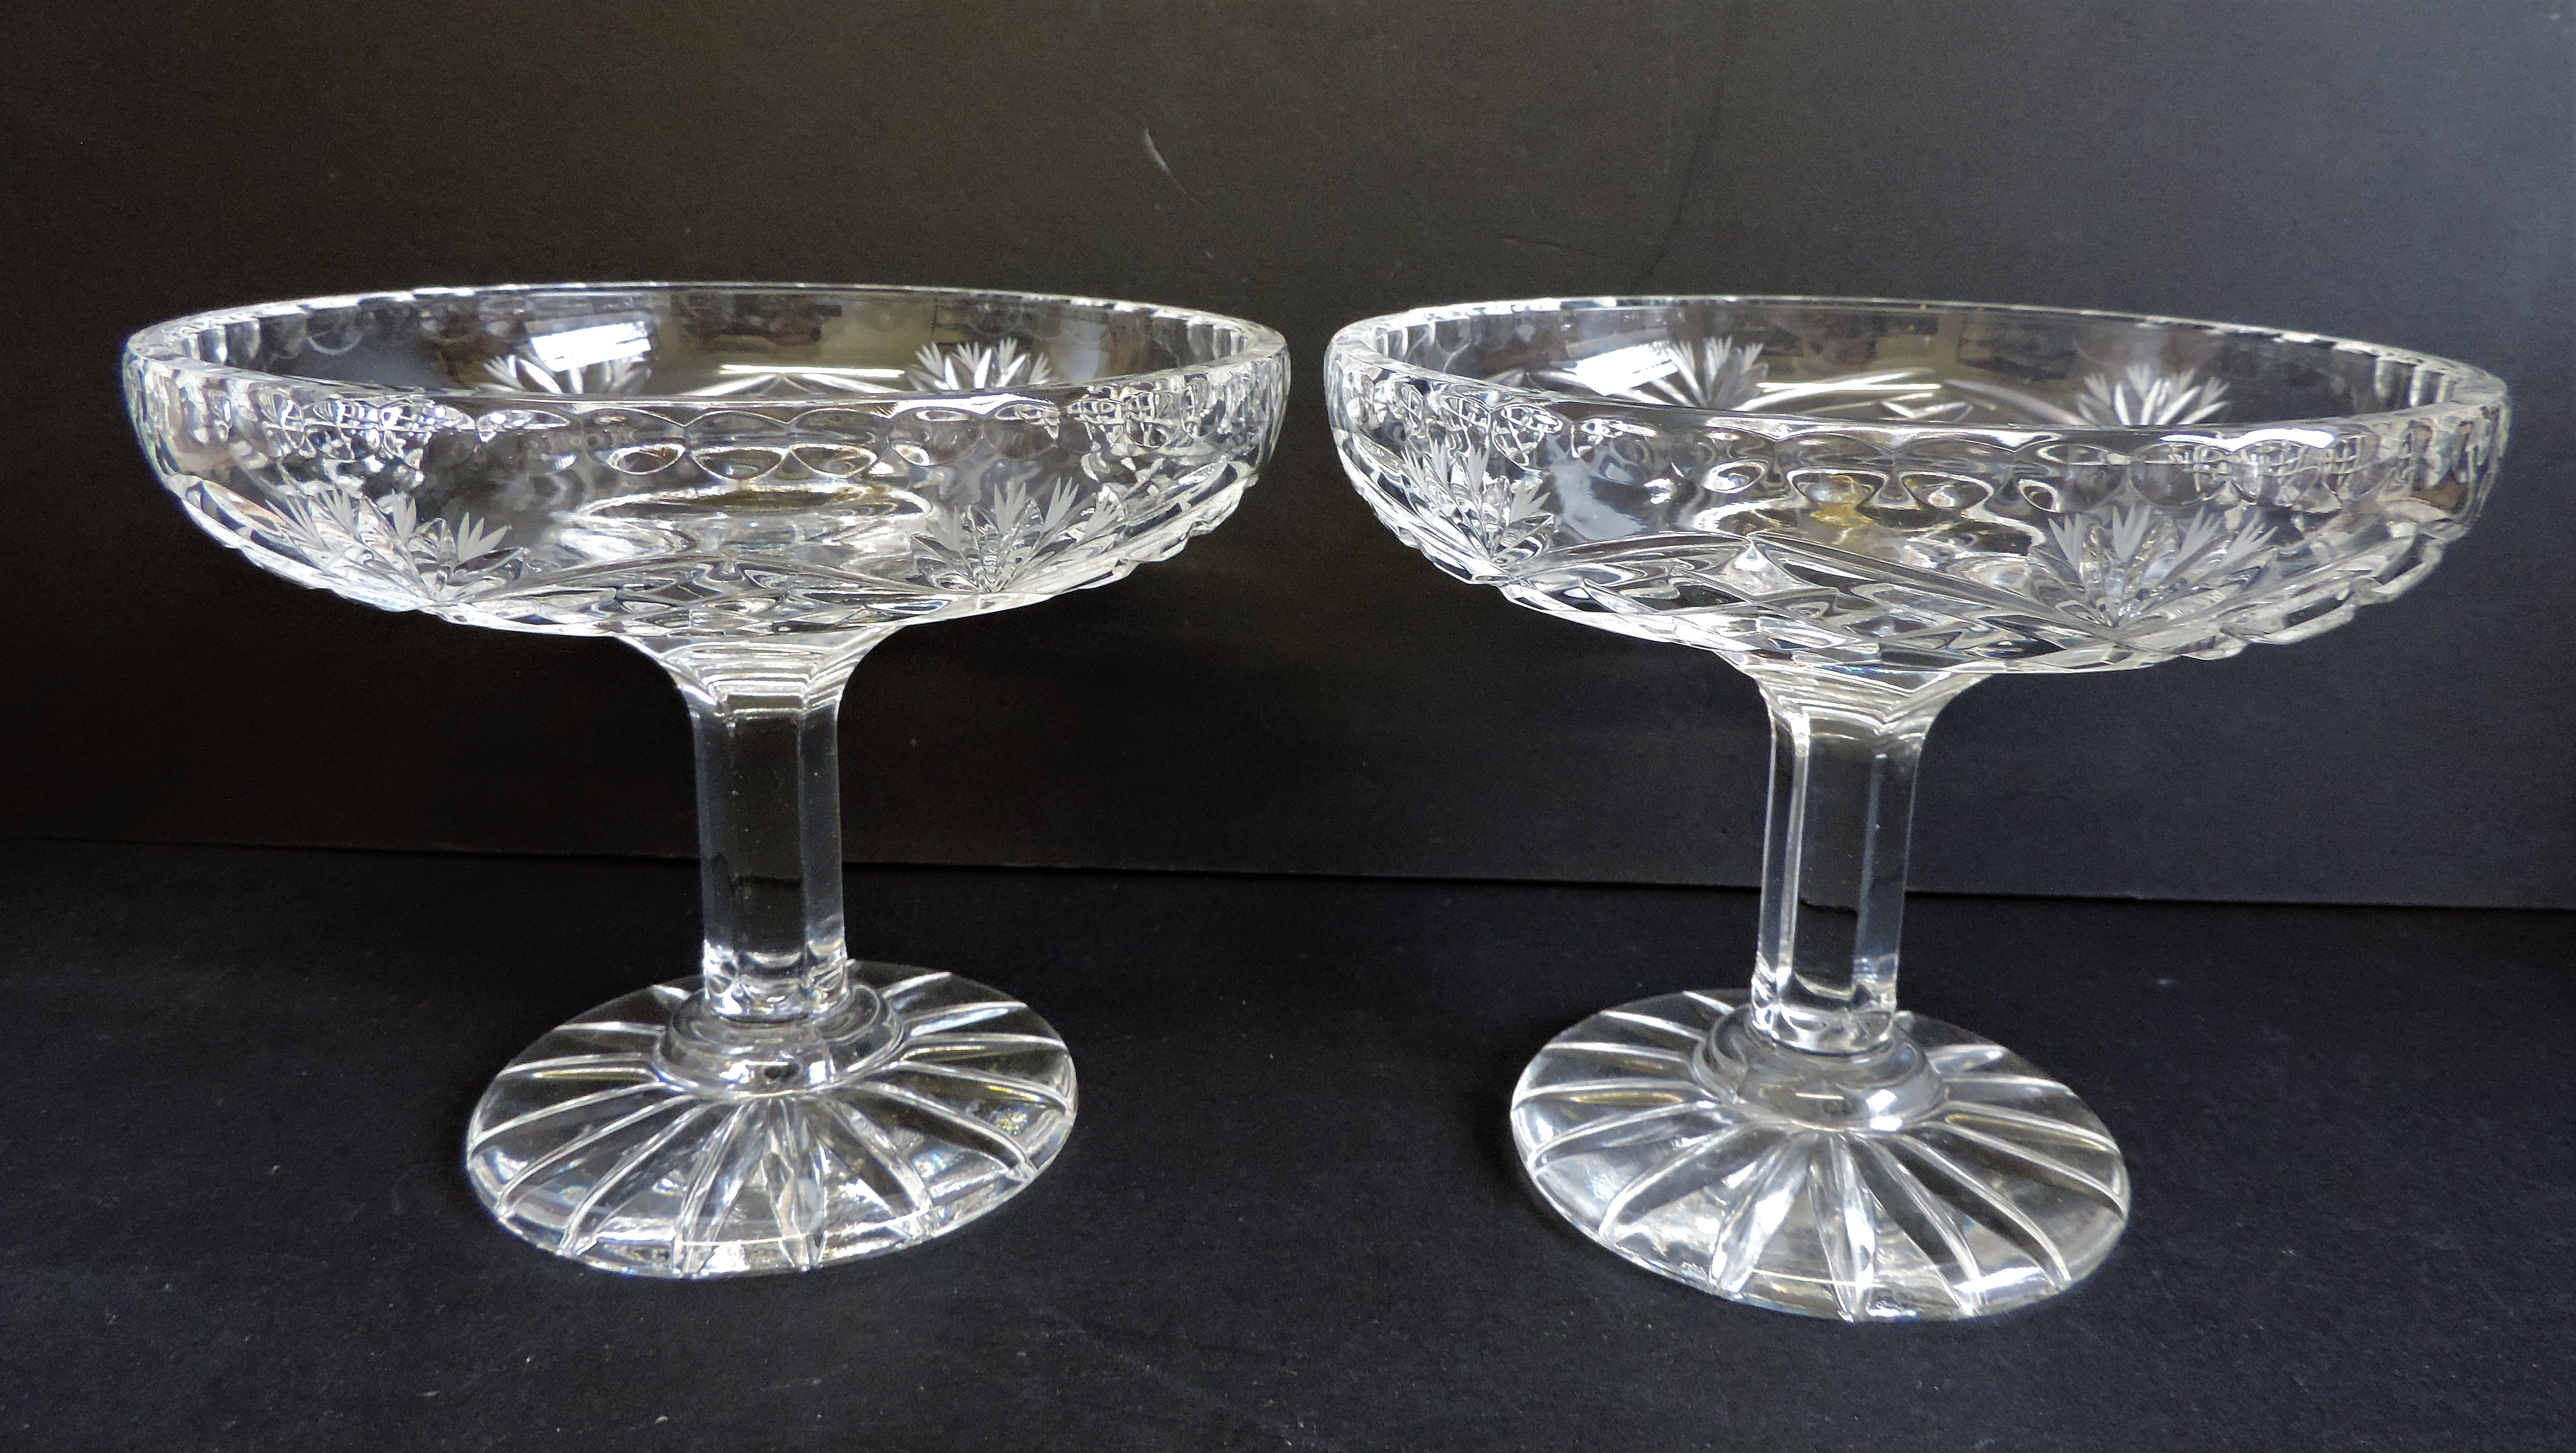 Pair of Hand Cut Crystal Dishes by Zawercie of Poland - Image 5 of 5